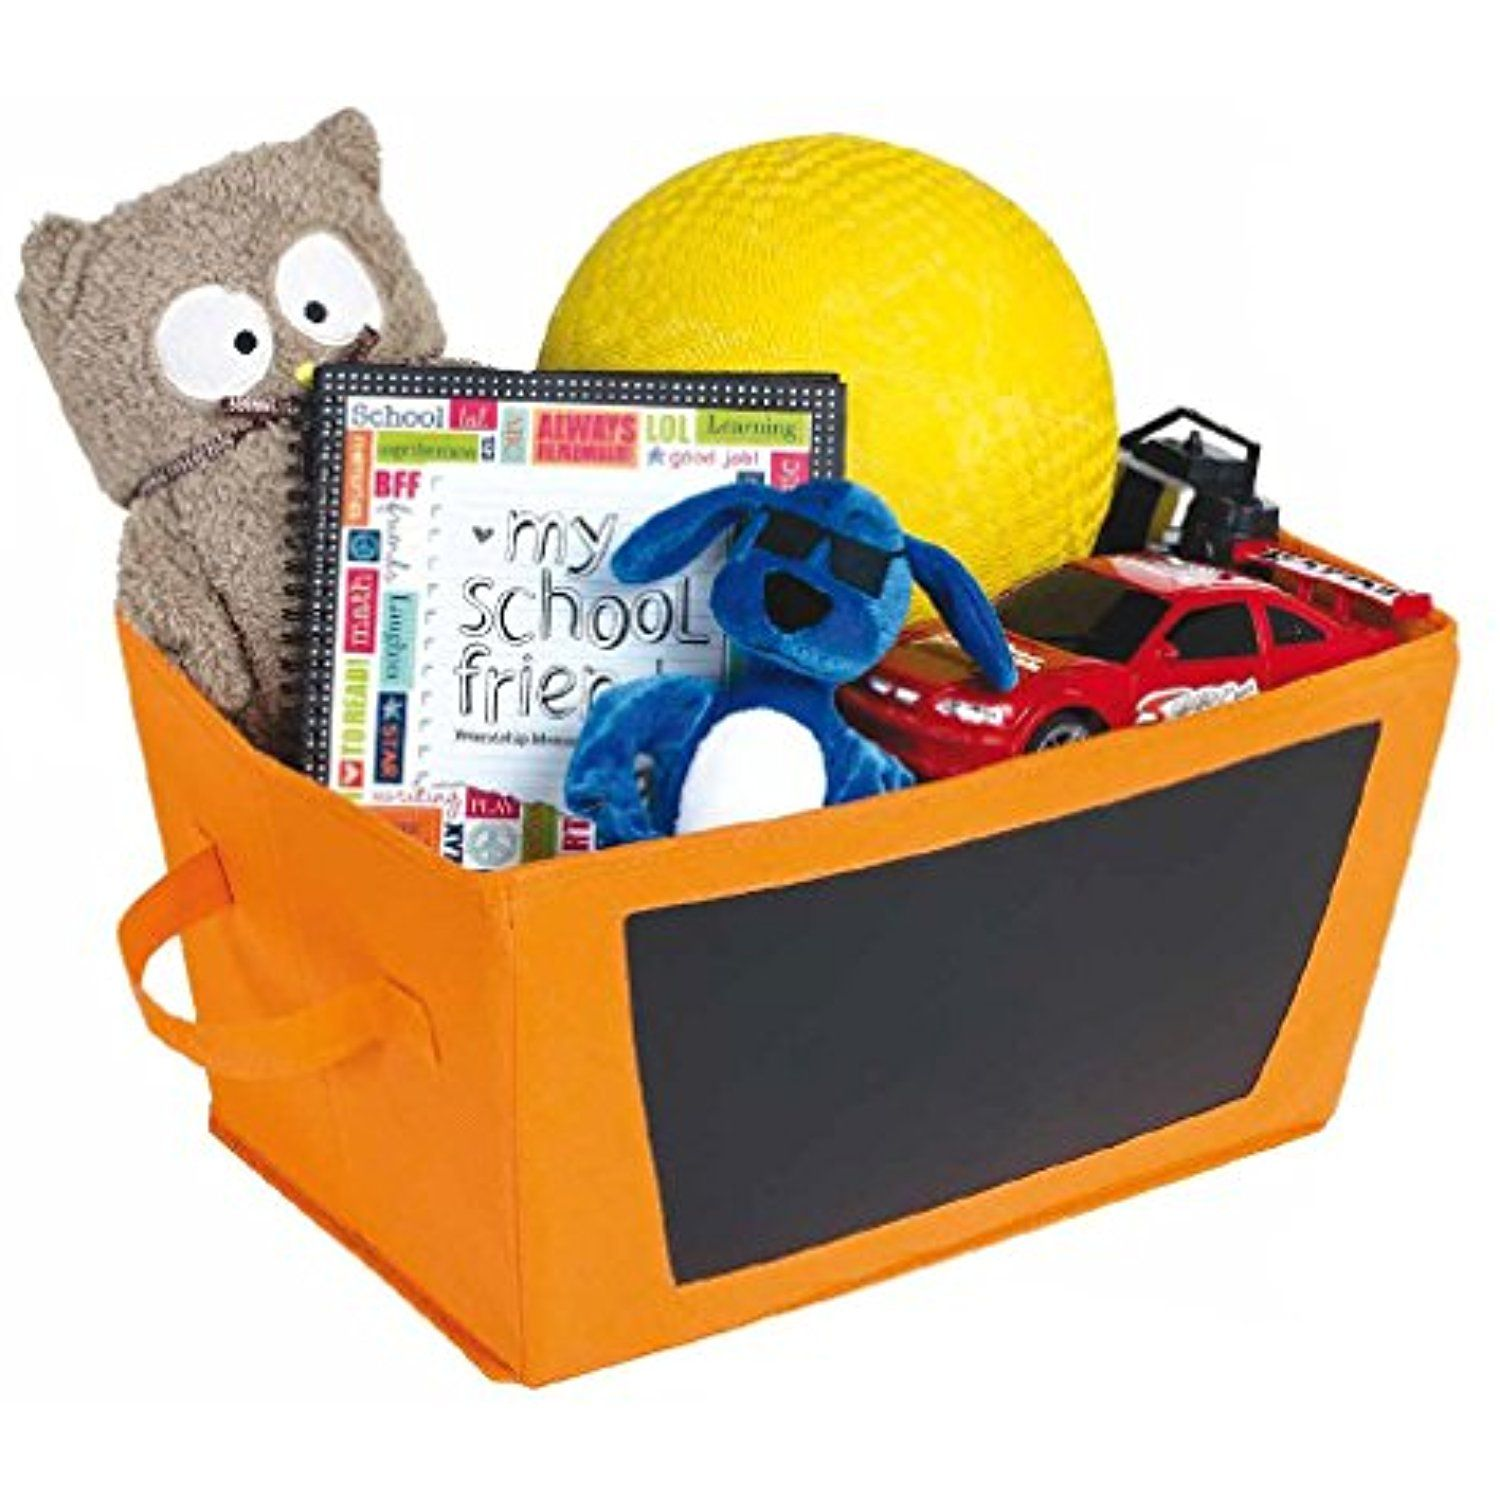 2 Pack - Halloween Storage Bin With Chalkboard Side - Orange - Kids Halloween Decorations